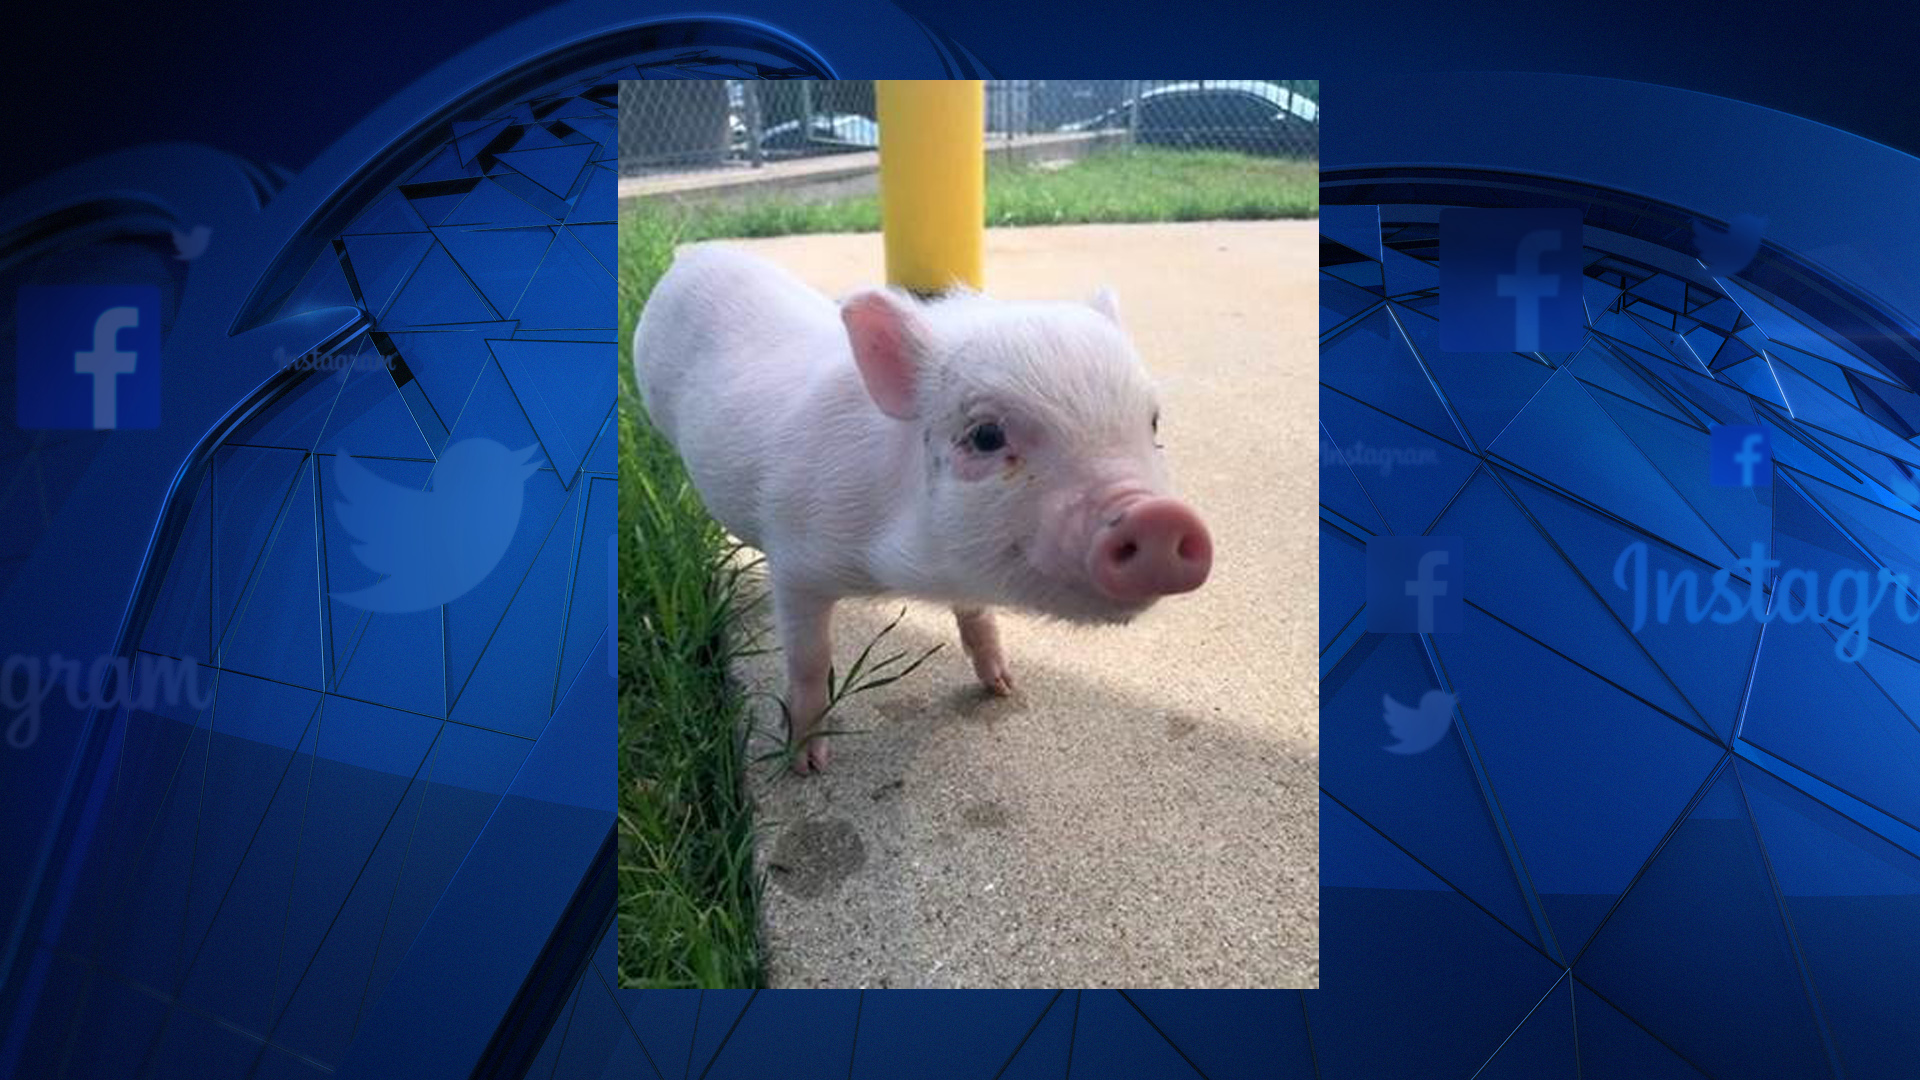 Pig Flies With 100 Dogs From Fort Worth for Good Reason